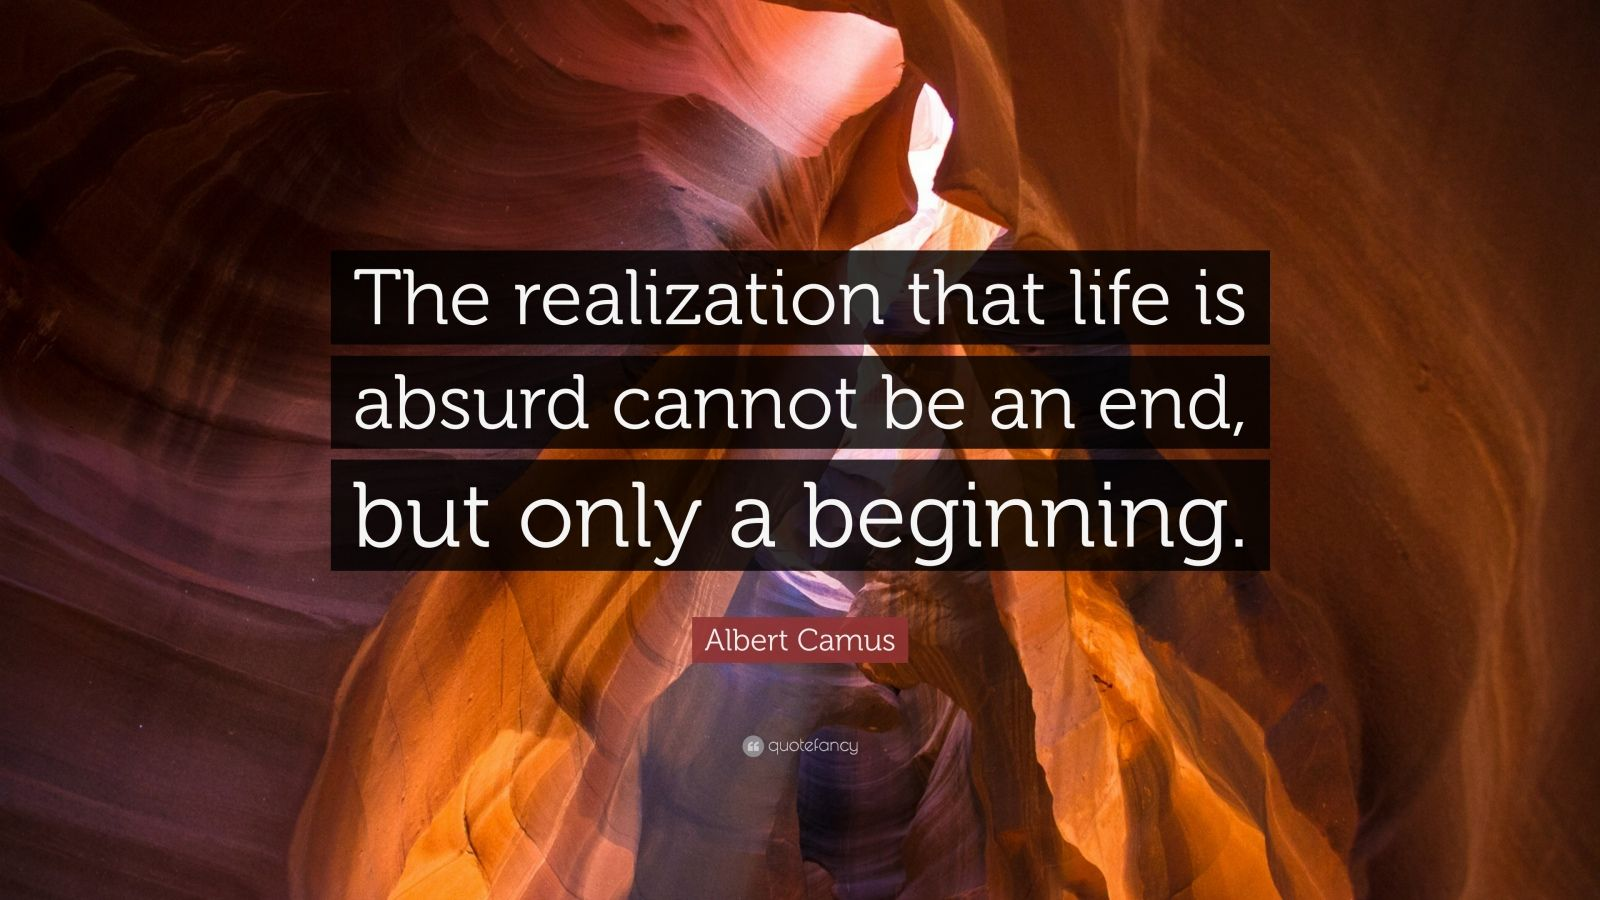 """Albert Camus Quote: """"The realization that life is absurd cannot be an end, but only a beginning."""""""